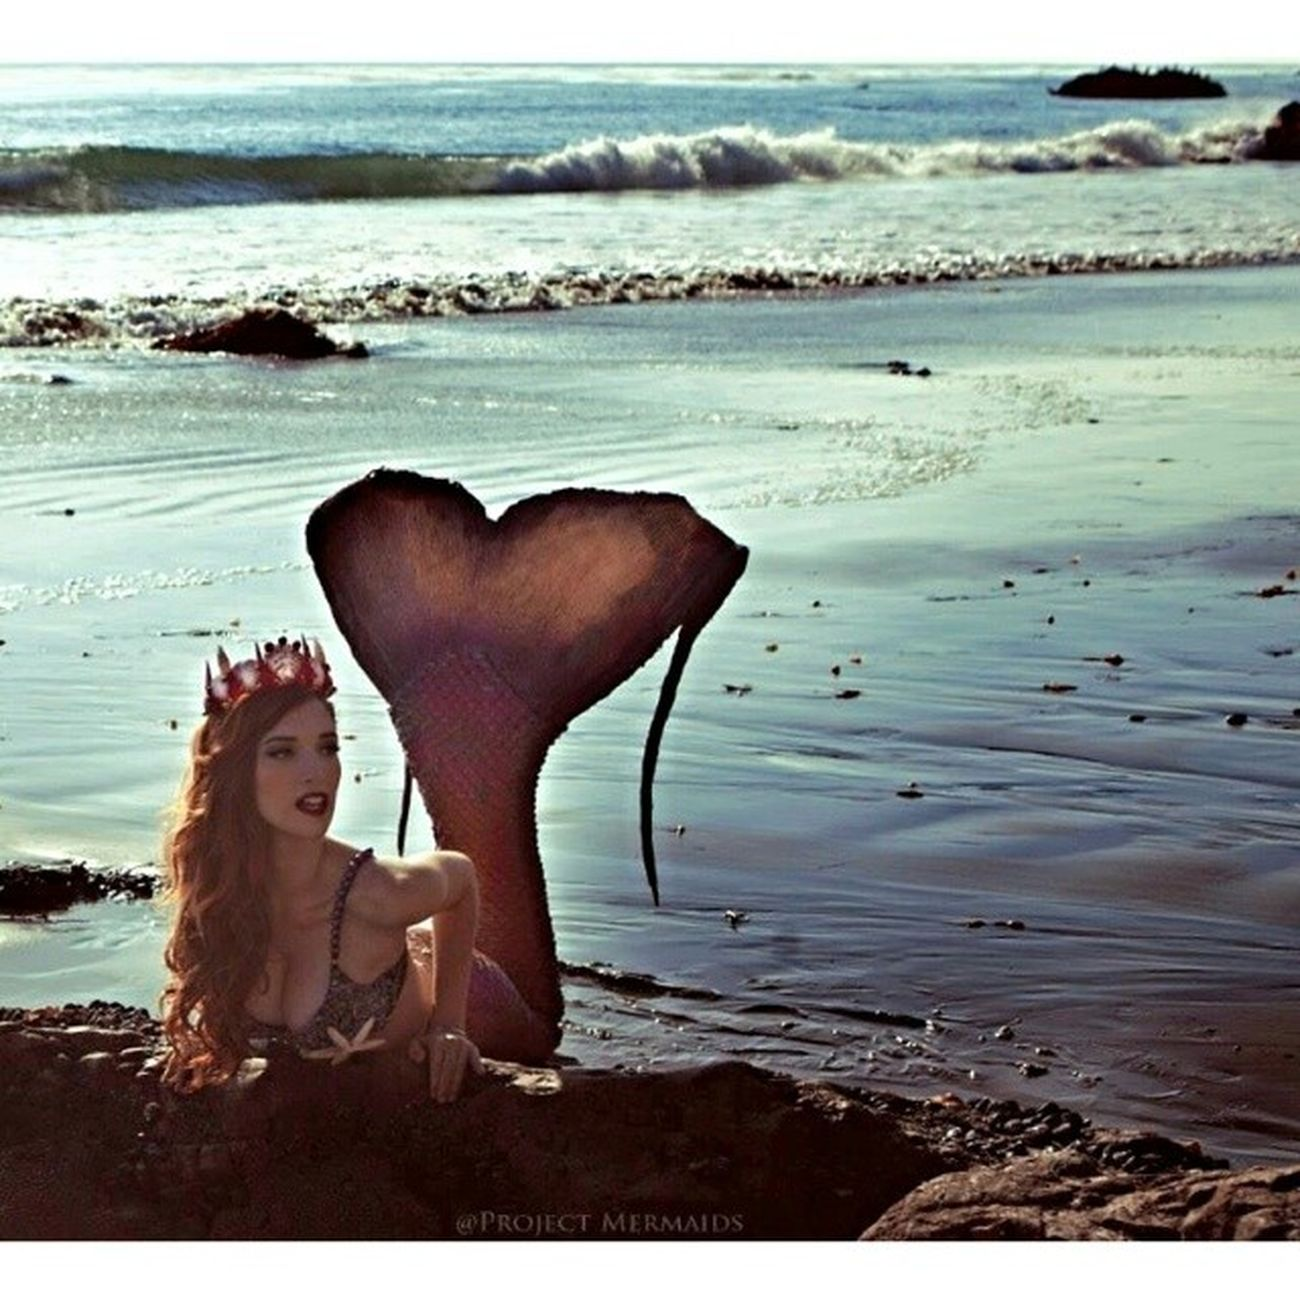 One of my favorite pictures from @projectmermaids Projectmermaids Mermaid